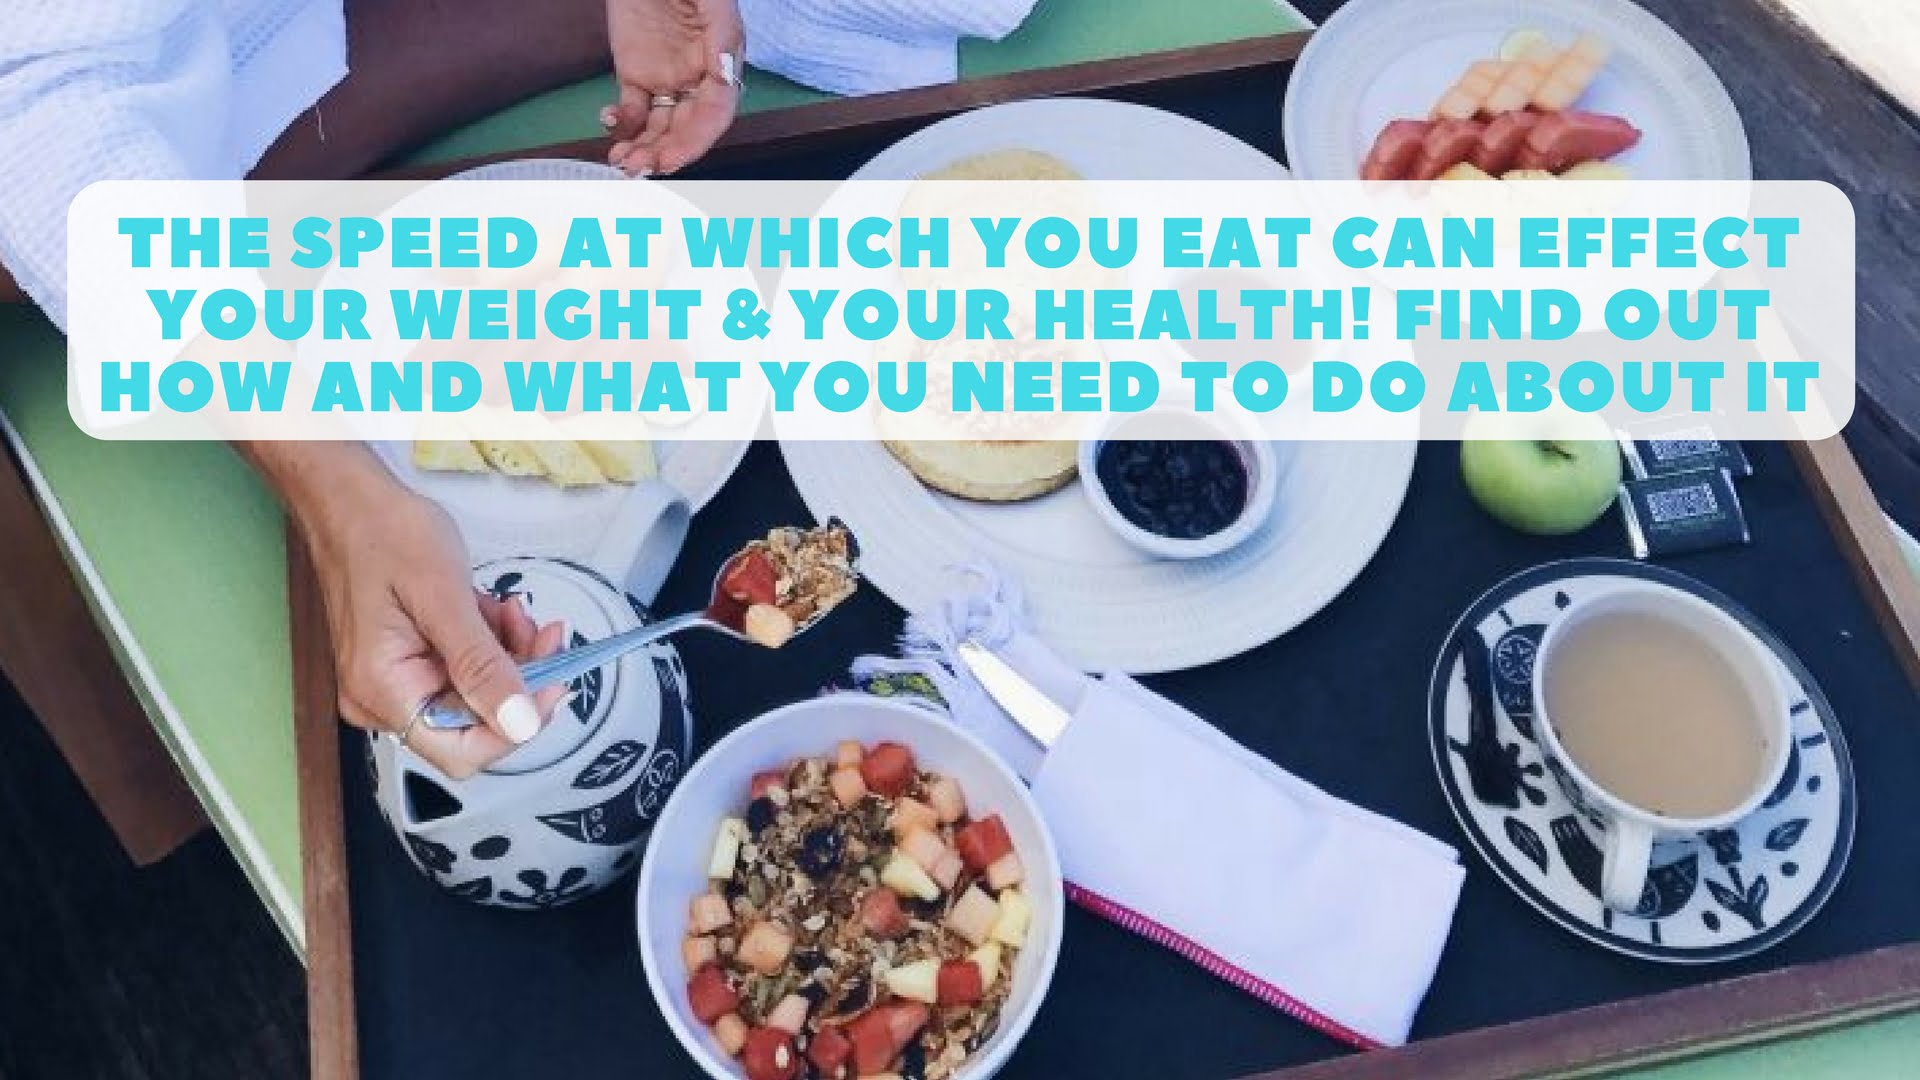 The Speed At Which You Eat Can Effect Your Weight & Your Health! Find Out How And What You Need To Do About It